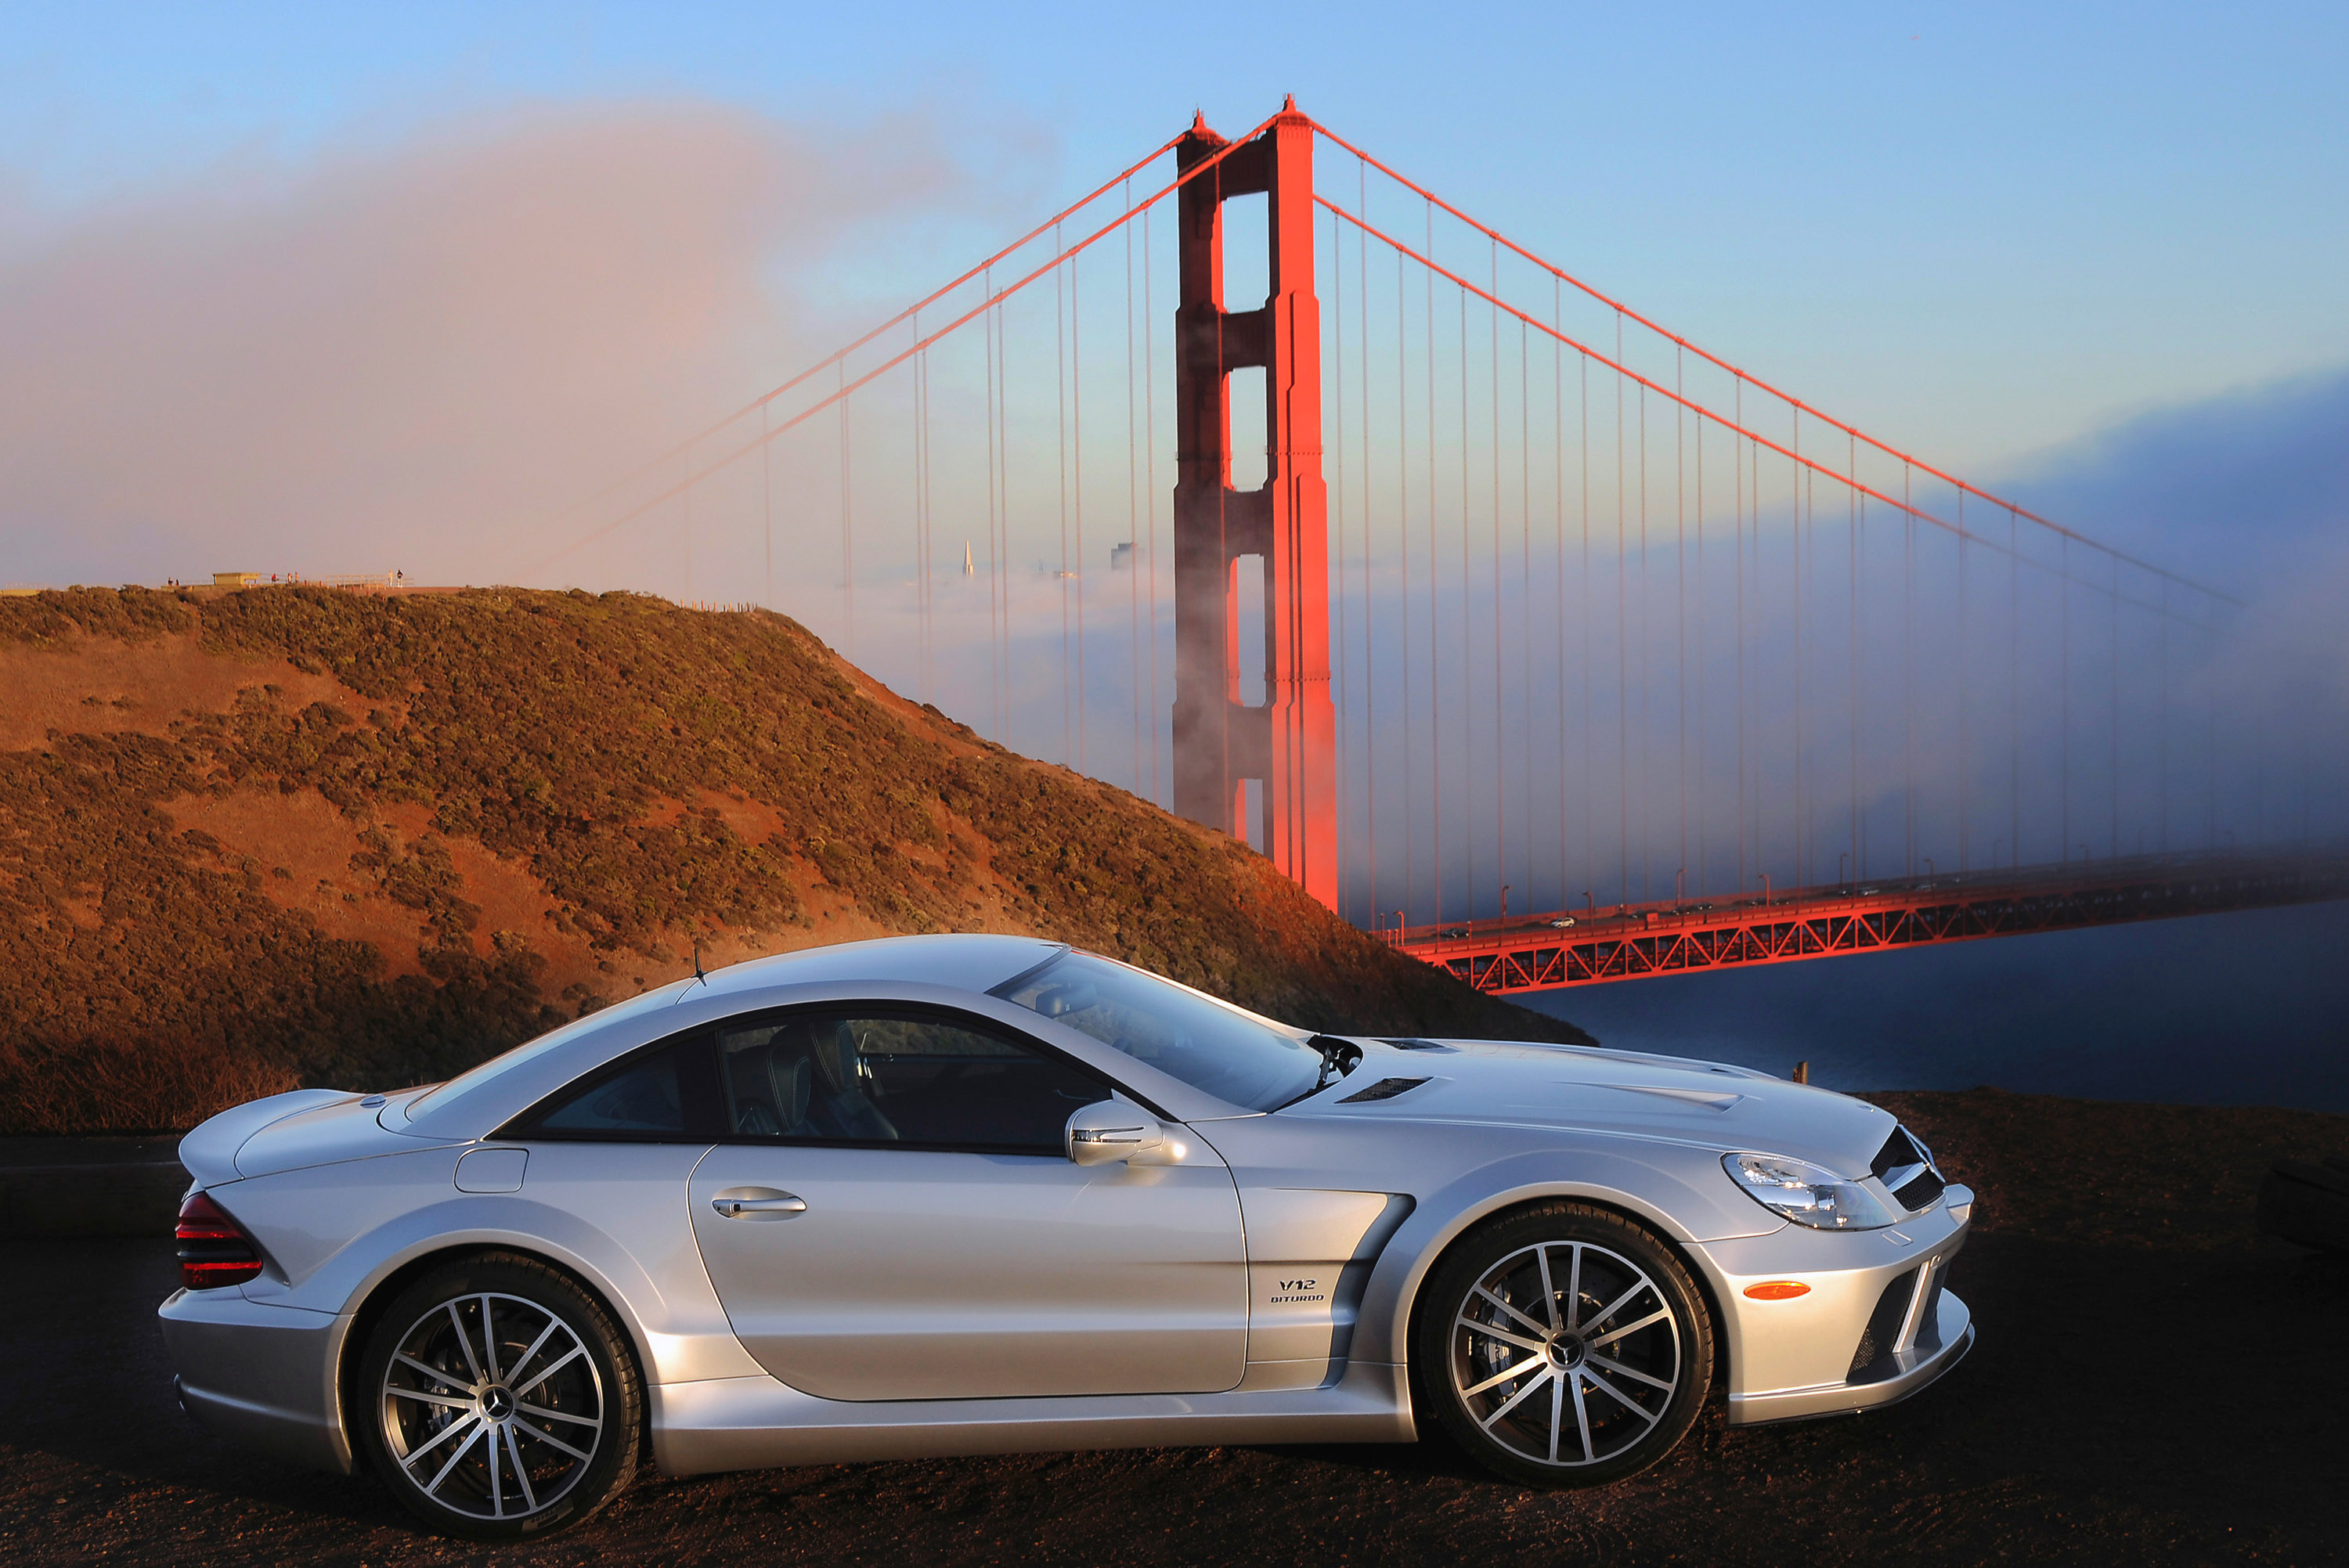 Mercedes Sl 65 Amg Black Series Vs Bmw M6 F12 And Porsche